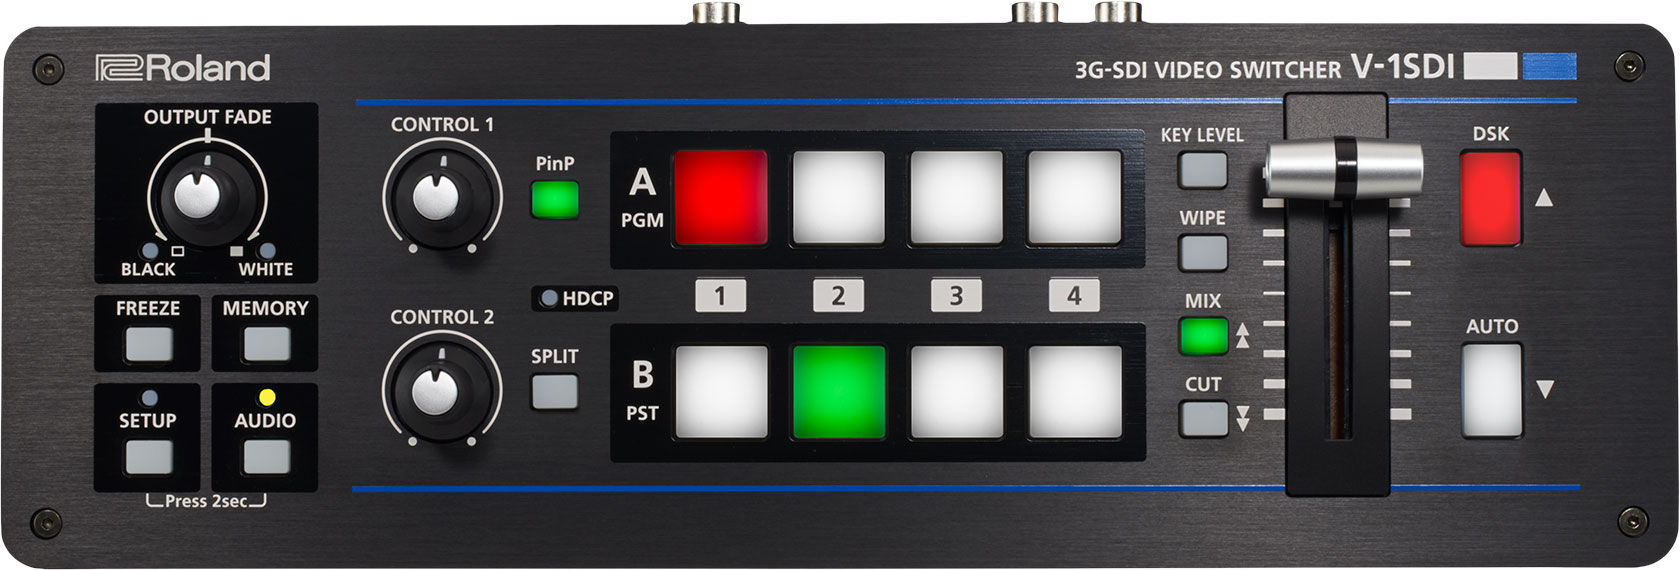 Roland Pro A/V - V-1SDI | 3G-SDI Video Switcher